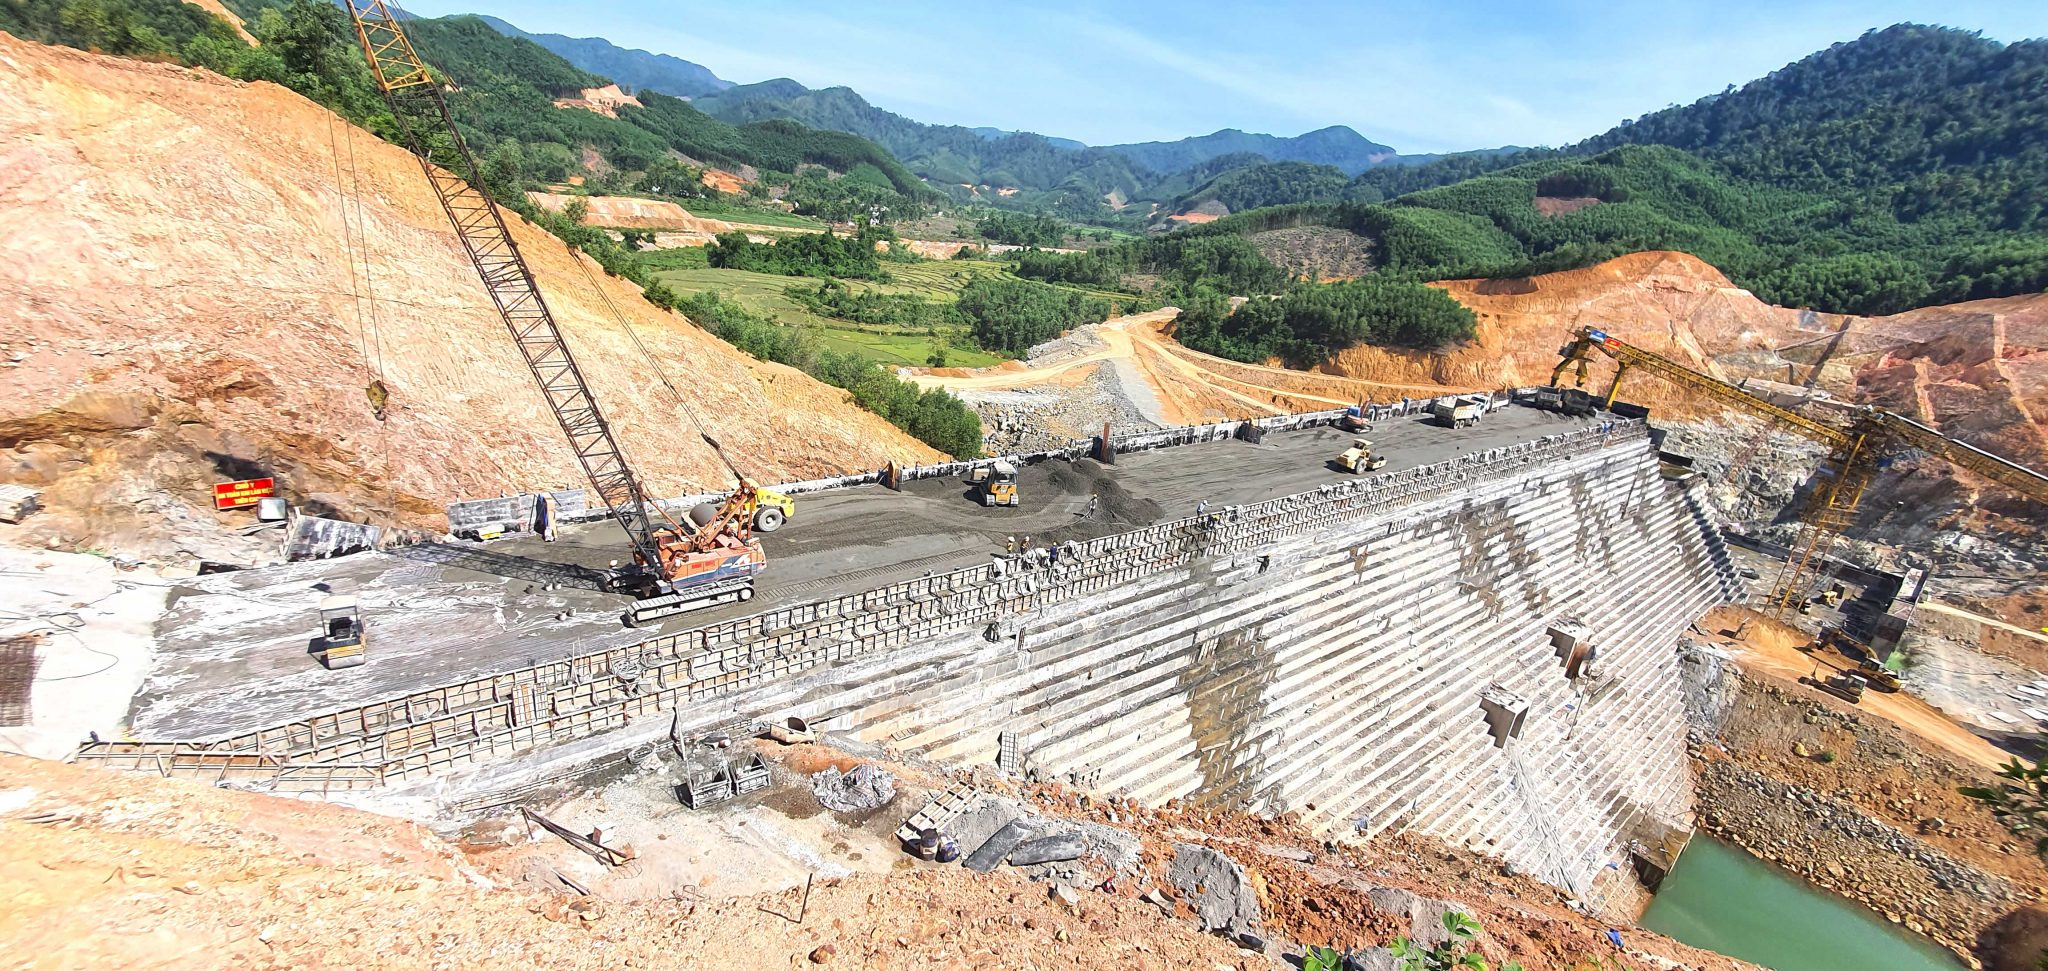 Updated Construction Images of Dong Mit Reservoir Project (June 2020)